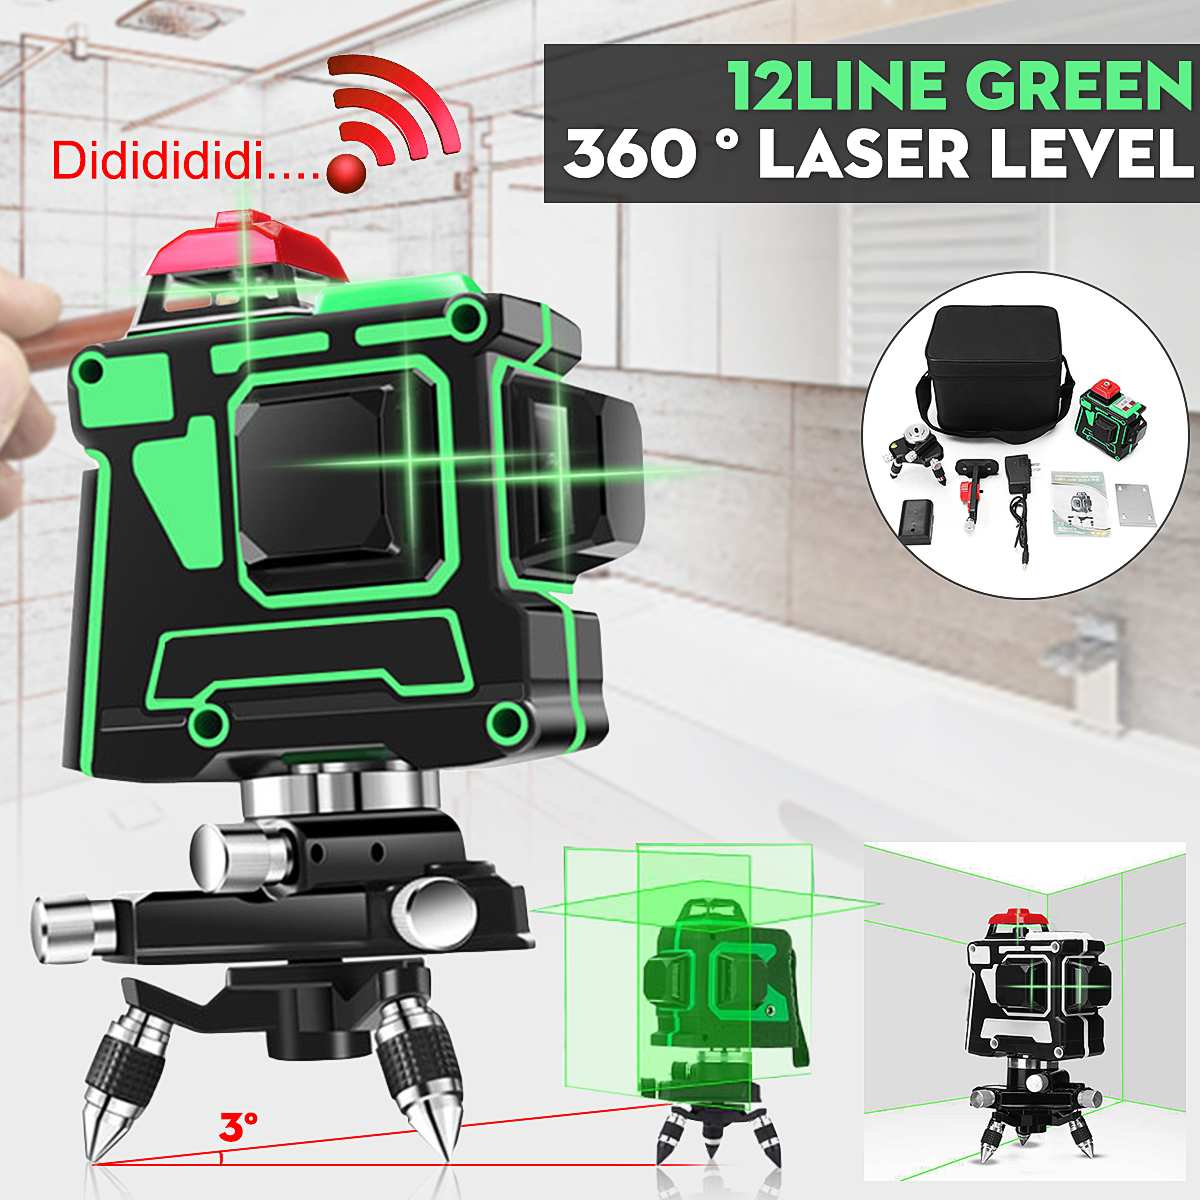 3D 12 Line Laser Level Green Light Auto Self Leveling 360° Rotary Measuring Tool